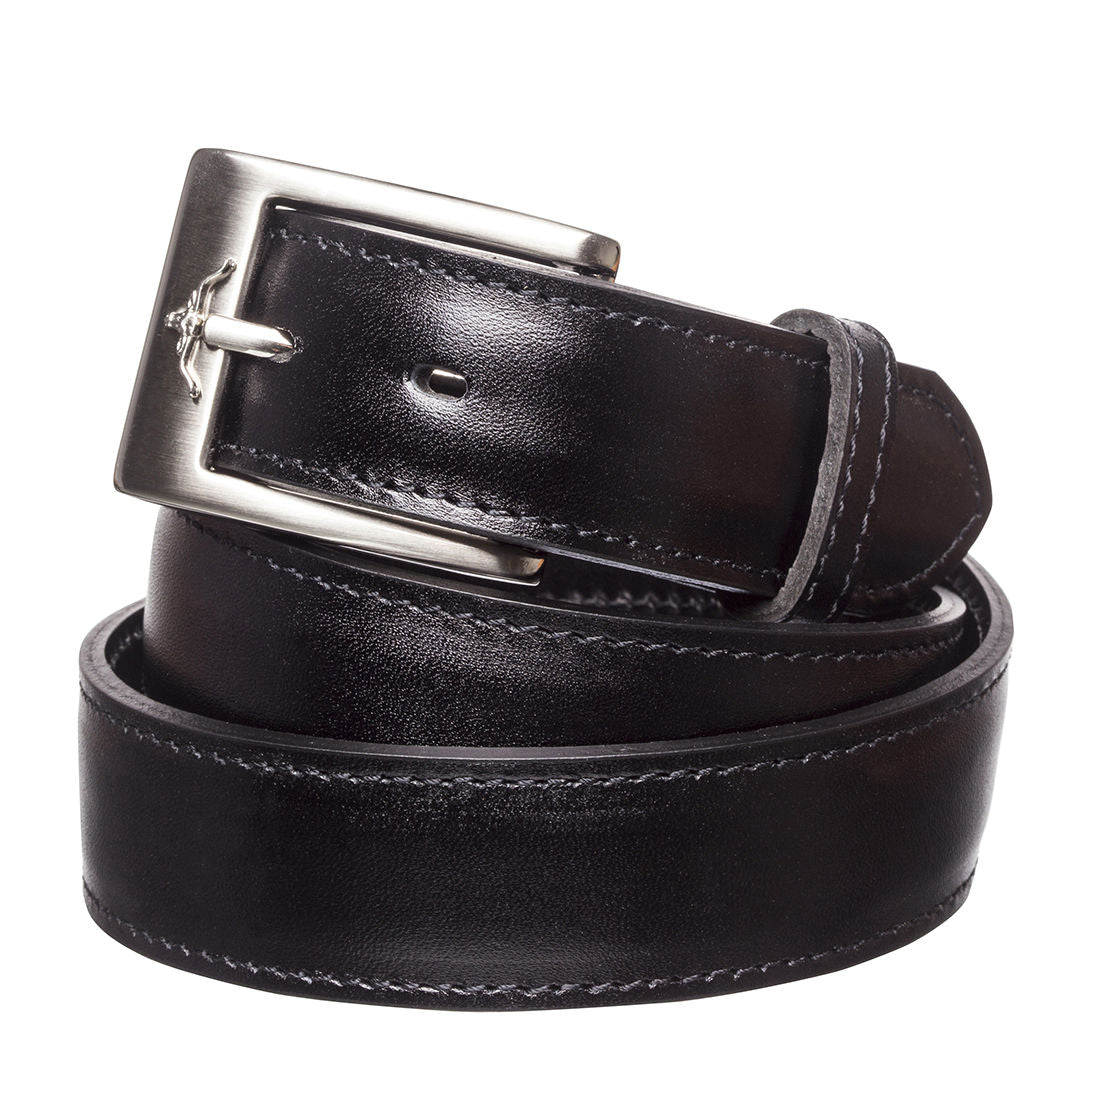 "R.M.Williams Black 1 1/4"" Yearling Dress Belt"